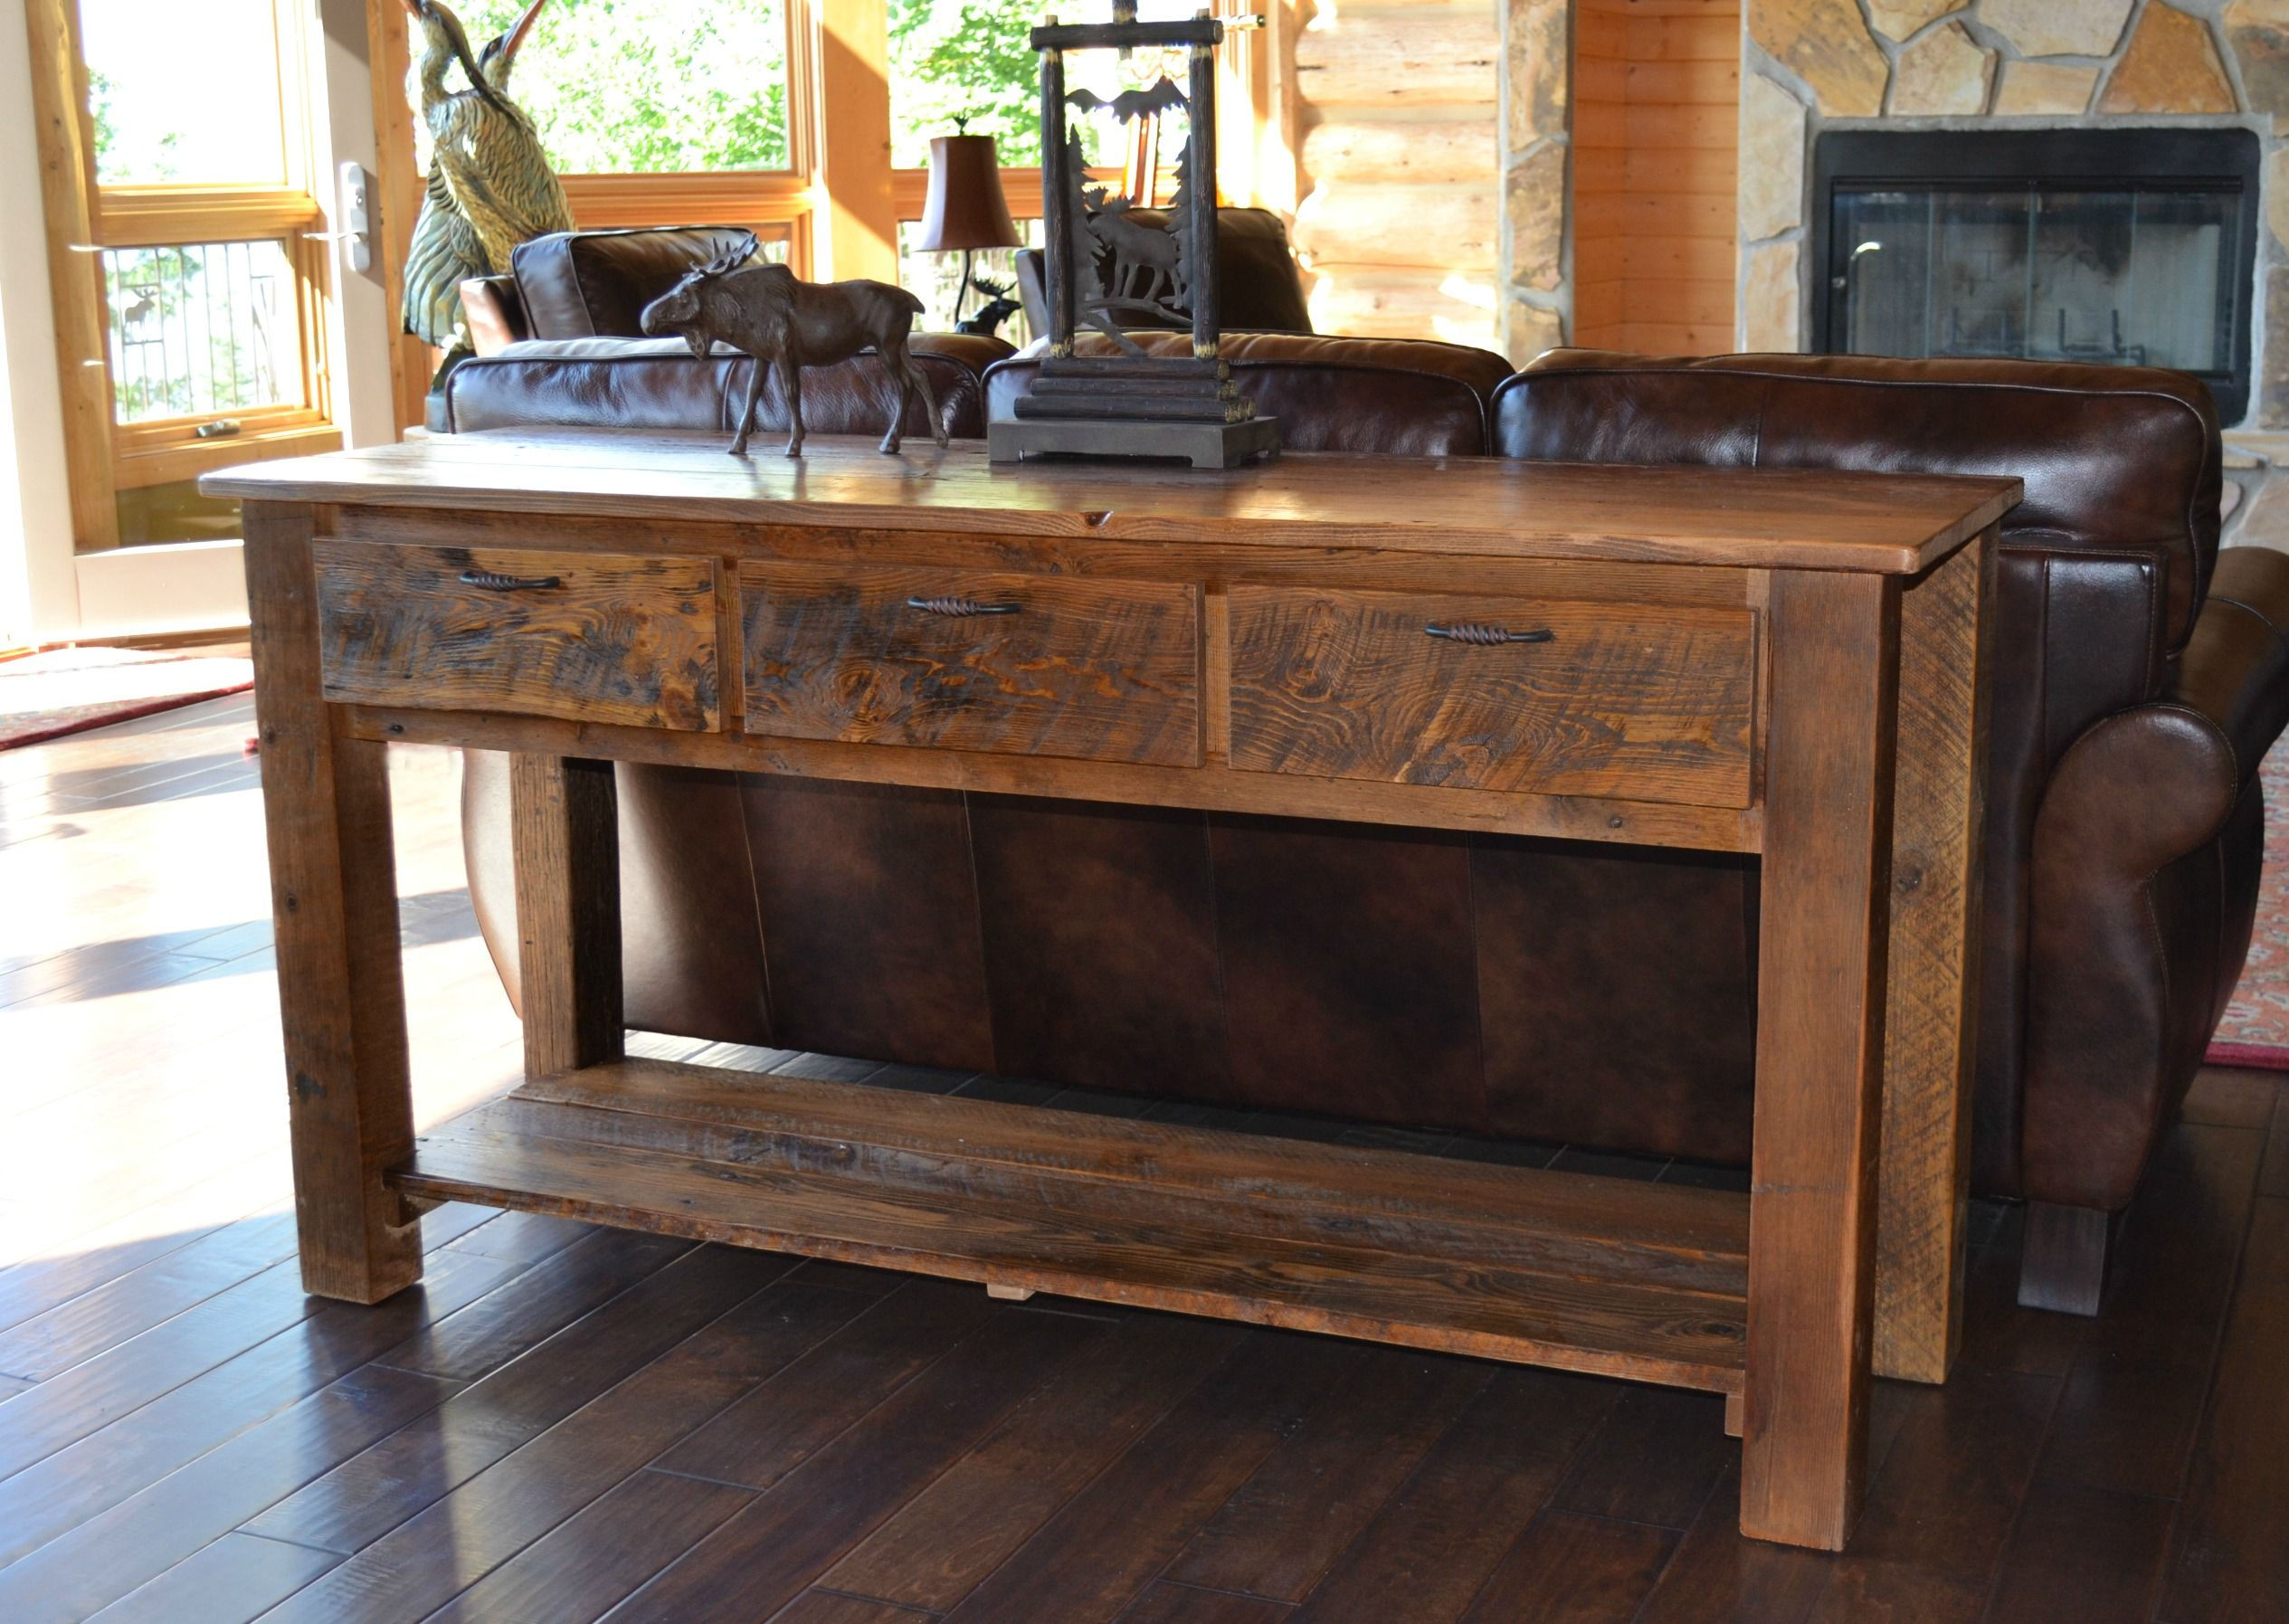 How to make a sofa table out of floor boards - Sofa Tables Reclaimed Teton 3 Drawer Sofa Table